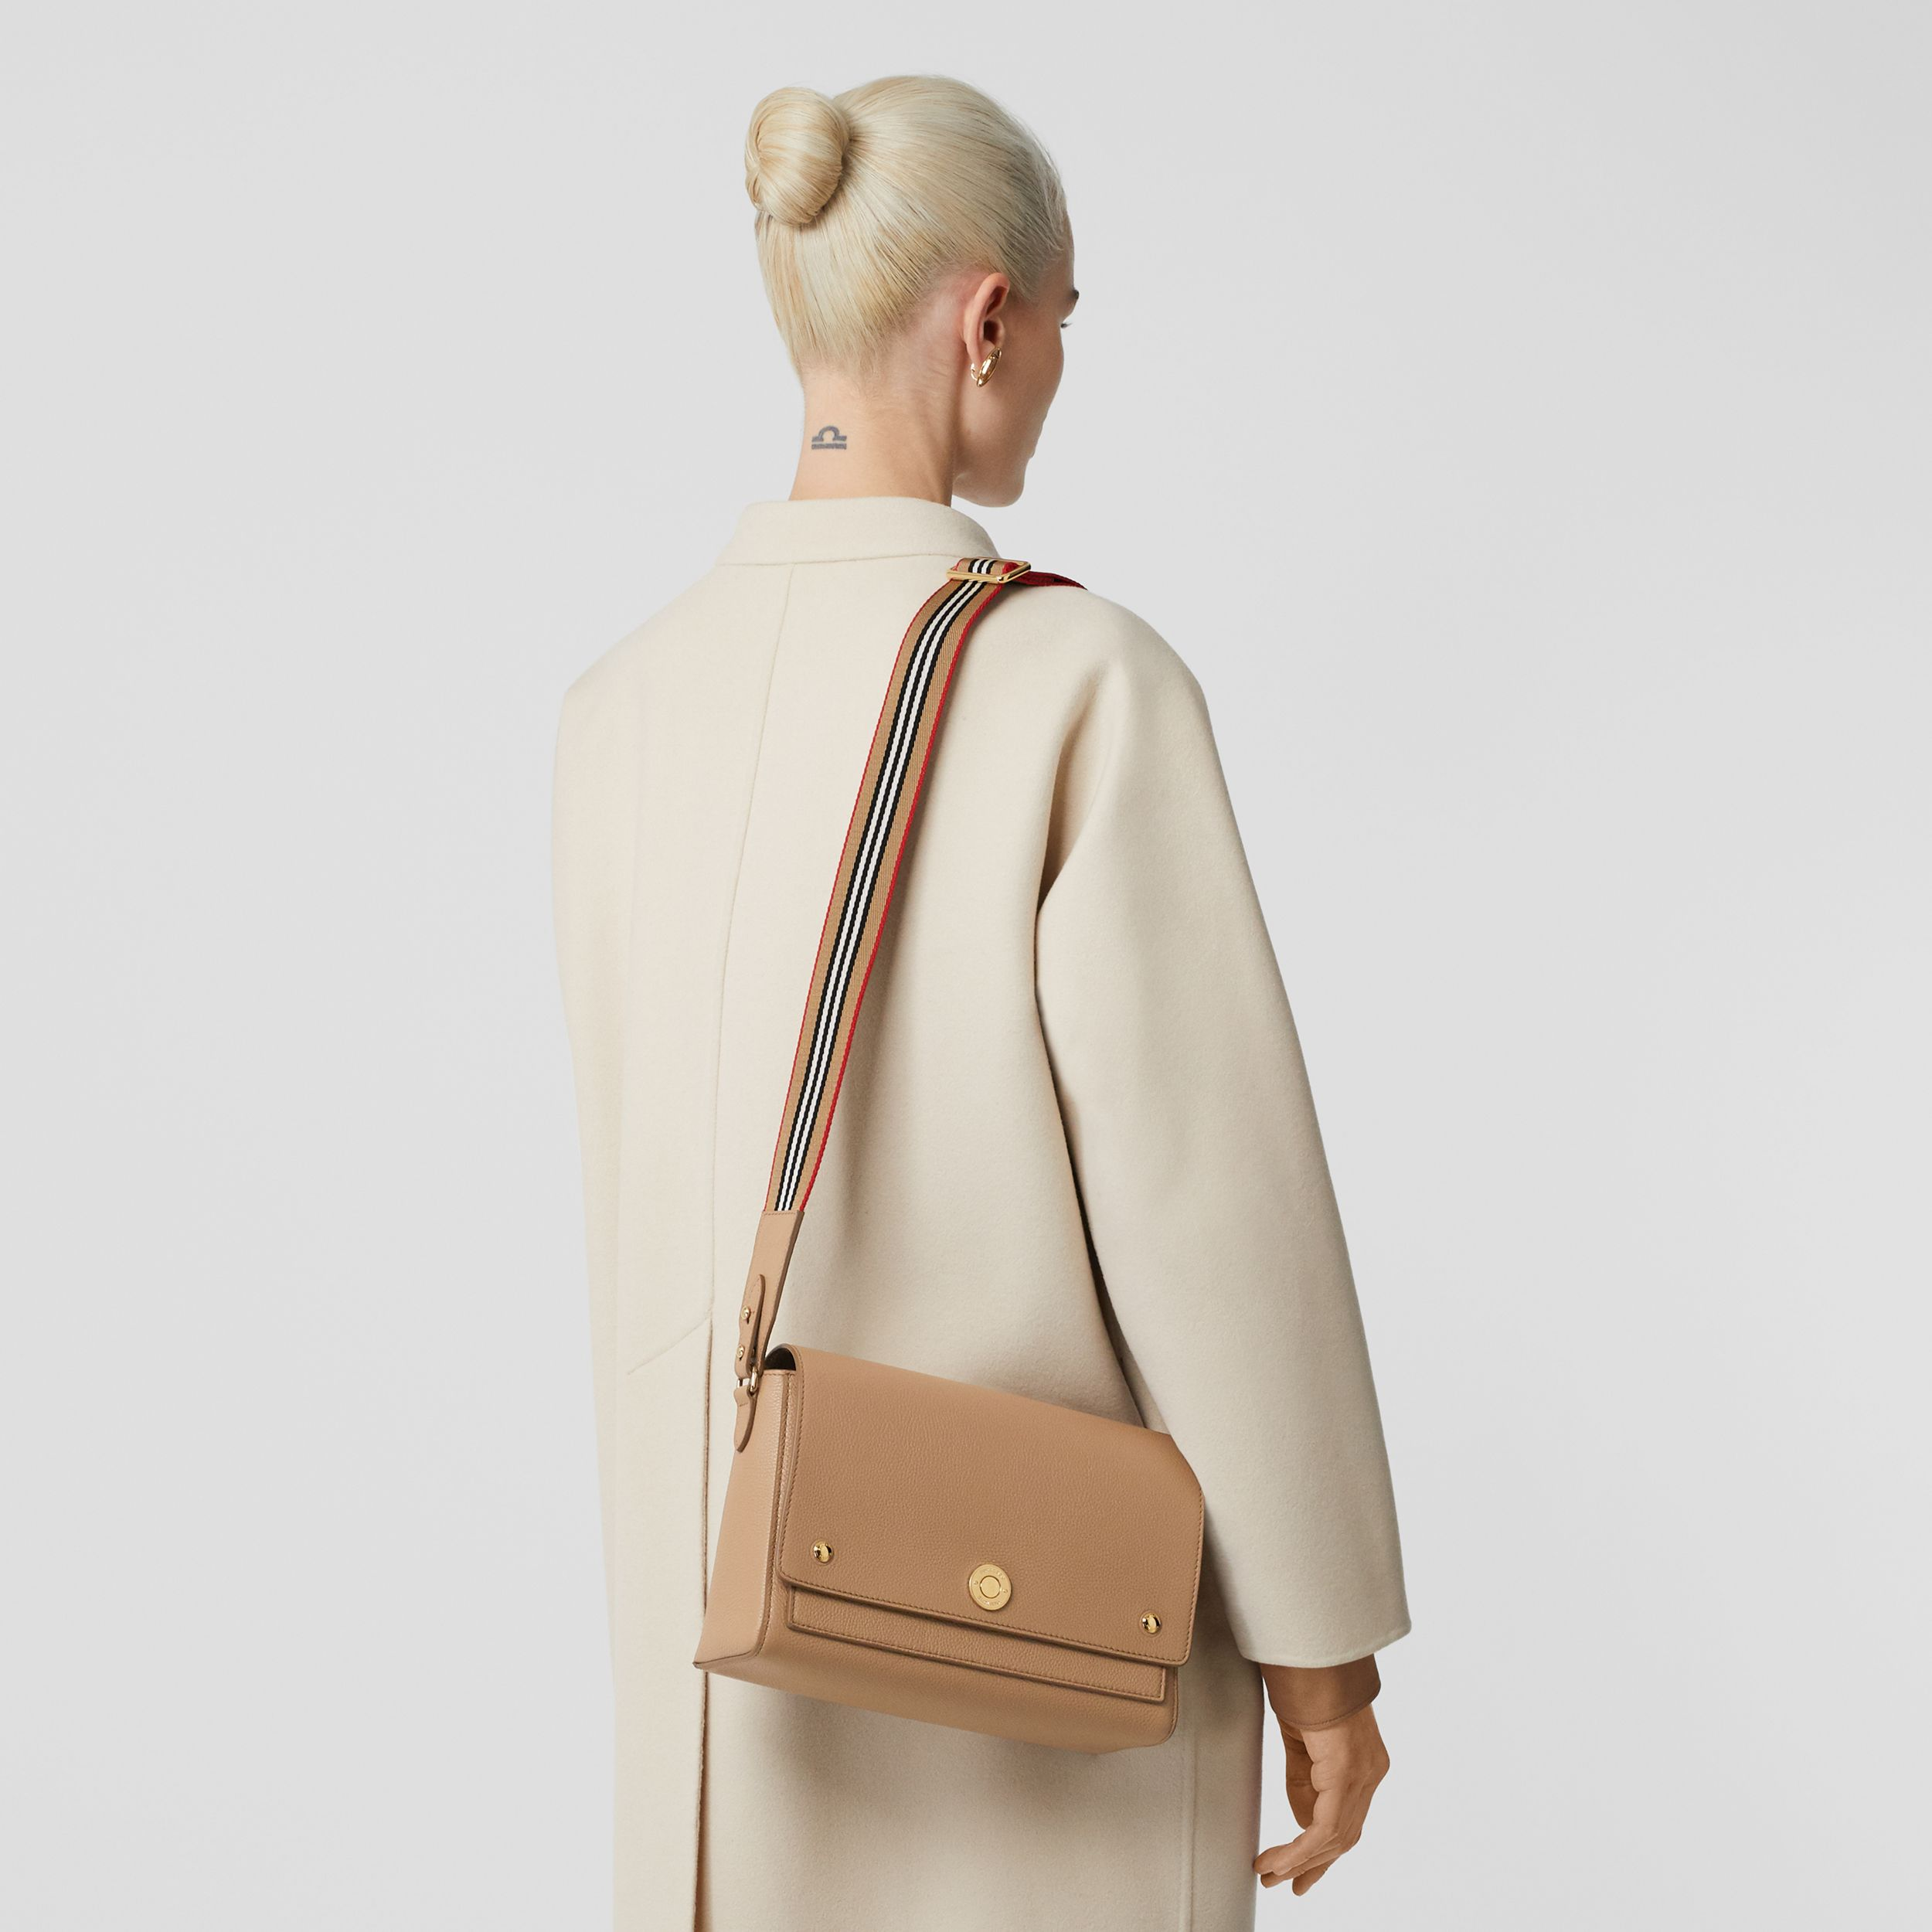 Grainy Leather Note Crossbody Bag in Camel - Women | Burberry - 3